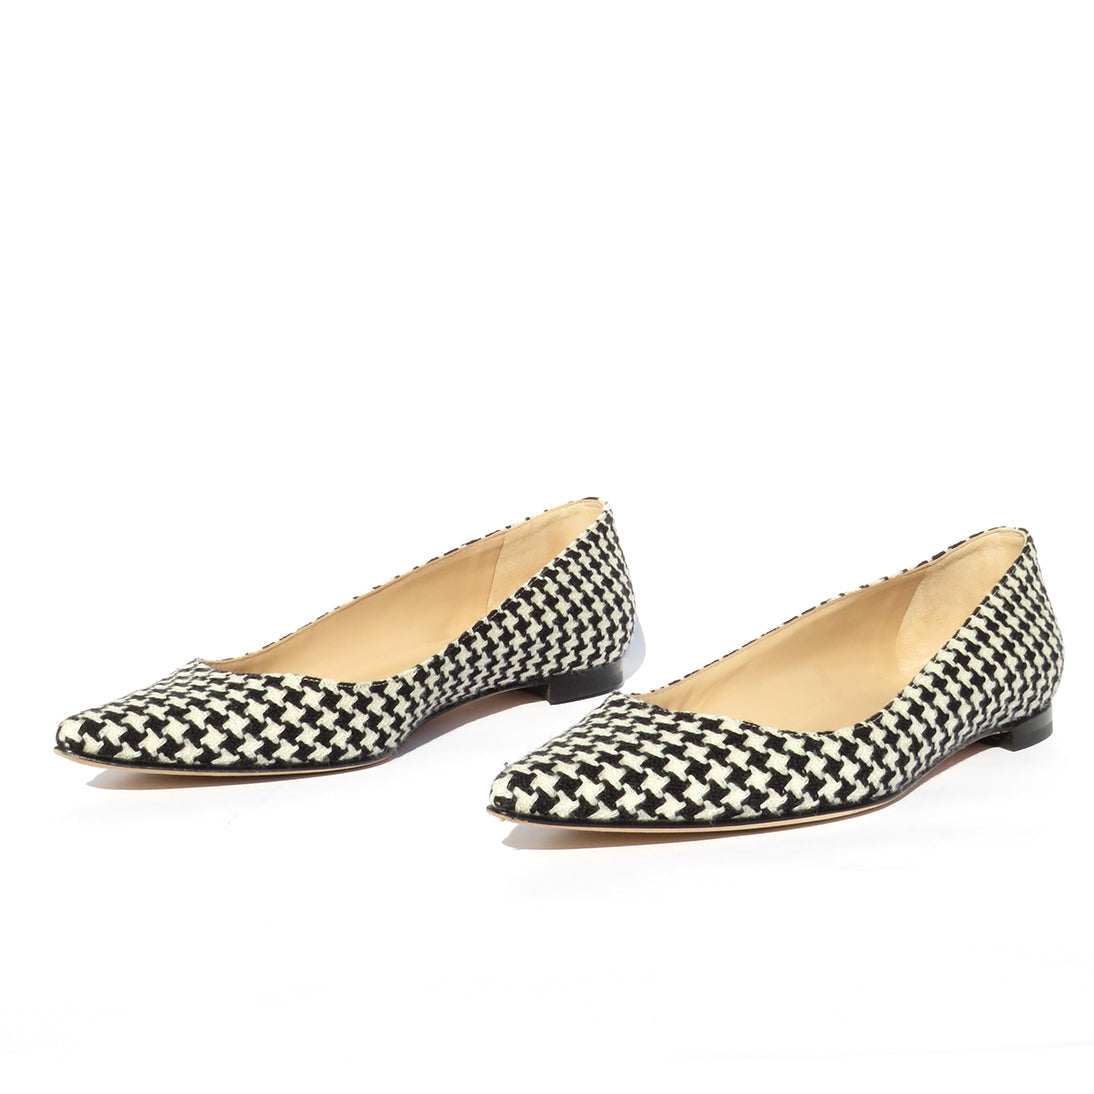 $645 MANOLO BLAHNIK BB Black White Houndstooth Fabric Pointed Toe Ballet Flats 39.5